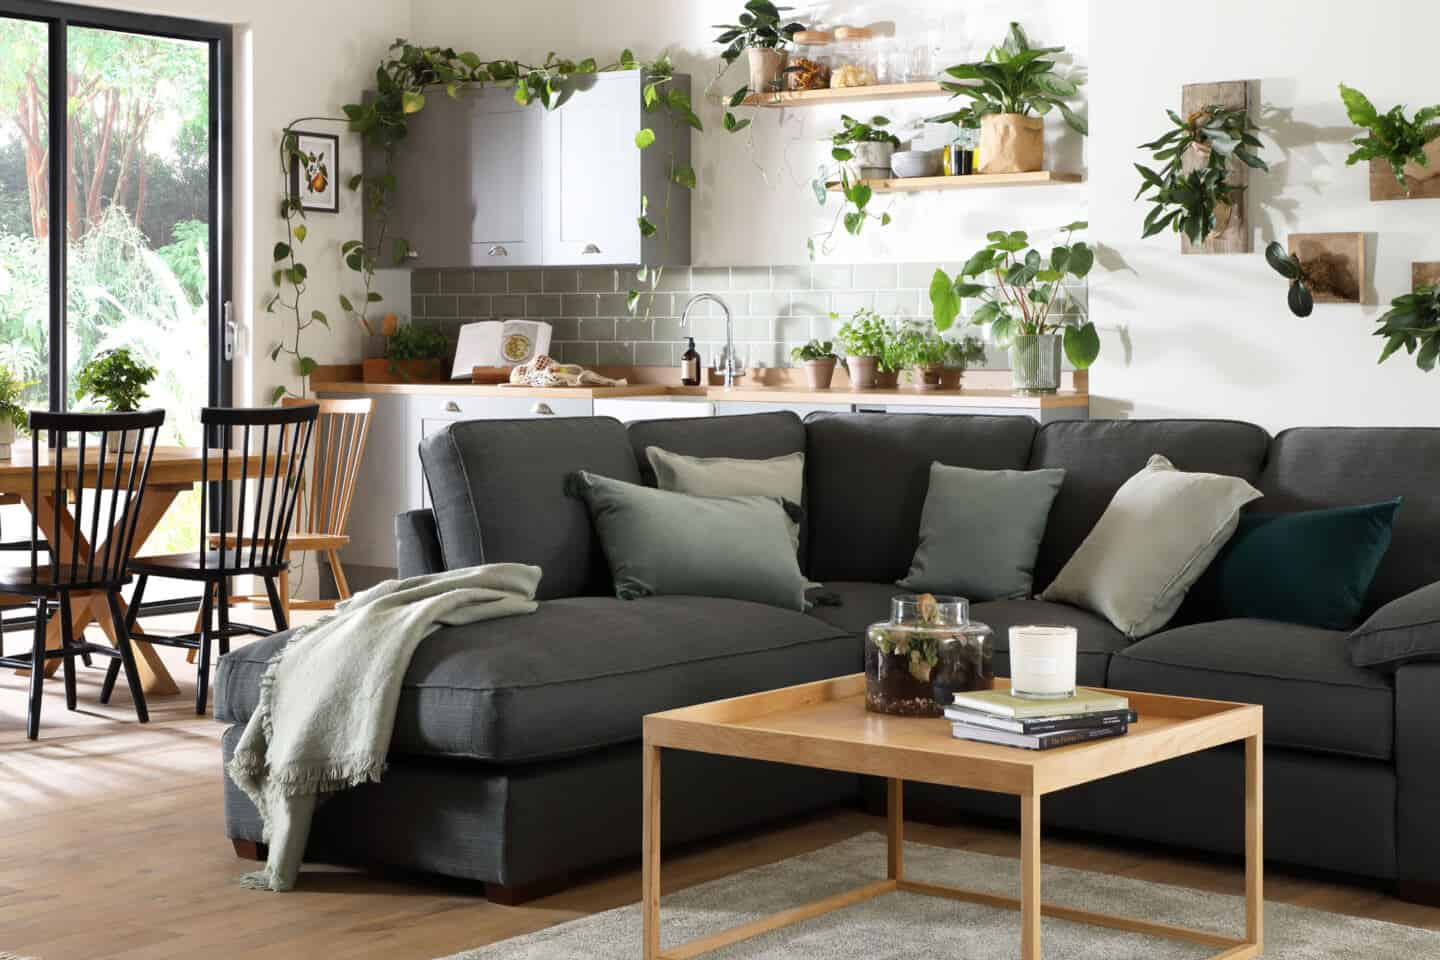 Bringing Natural Elements into the Home. Living room and  featuring a grey sofa with a kitchen dining space behind. The room is full of plants.